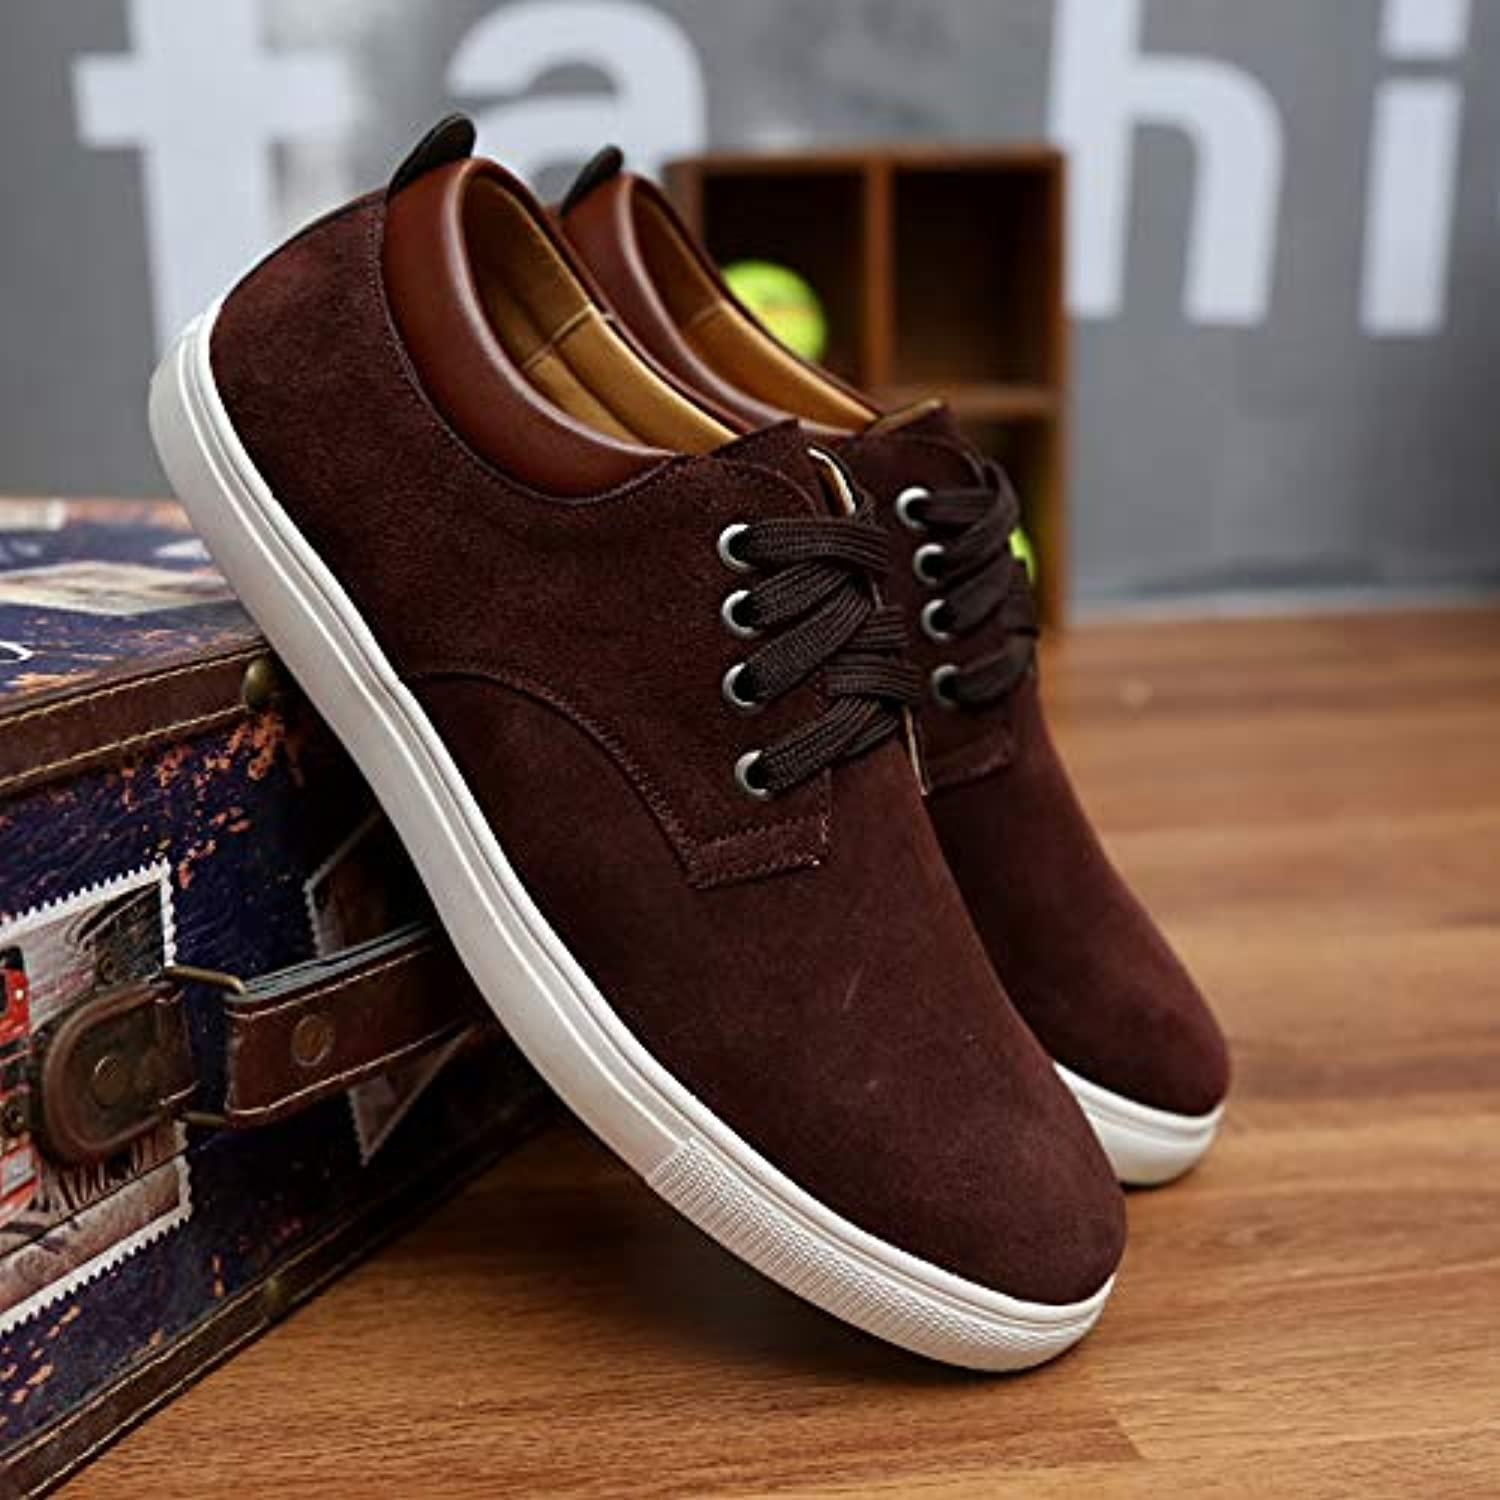 LOVDRAM Casual shoes Casual shoes Casual shoes Pu Suede shoes 45 Single shoes 46 Men'S shoes 48 Extra Large 48 49 Yards